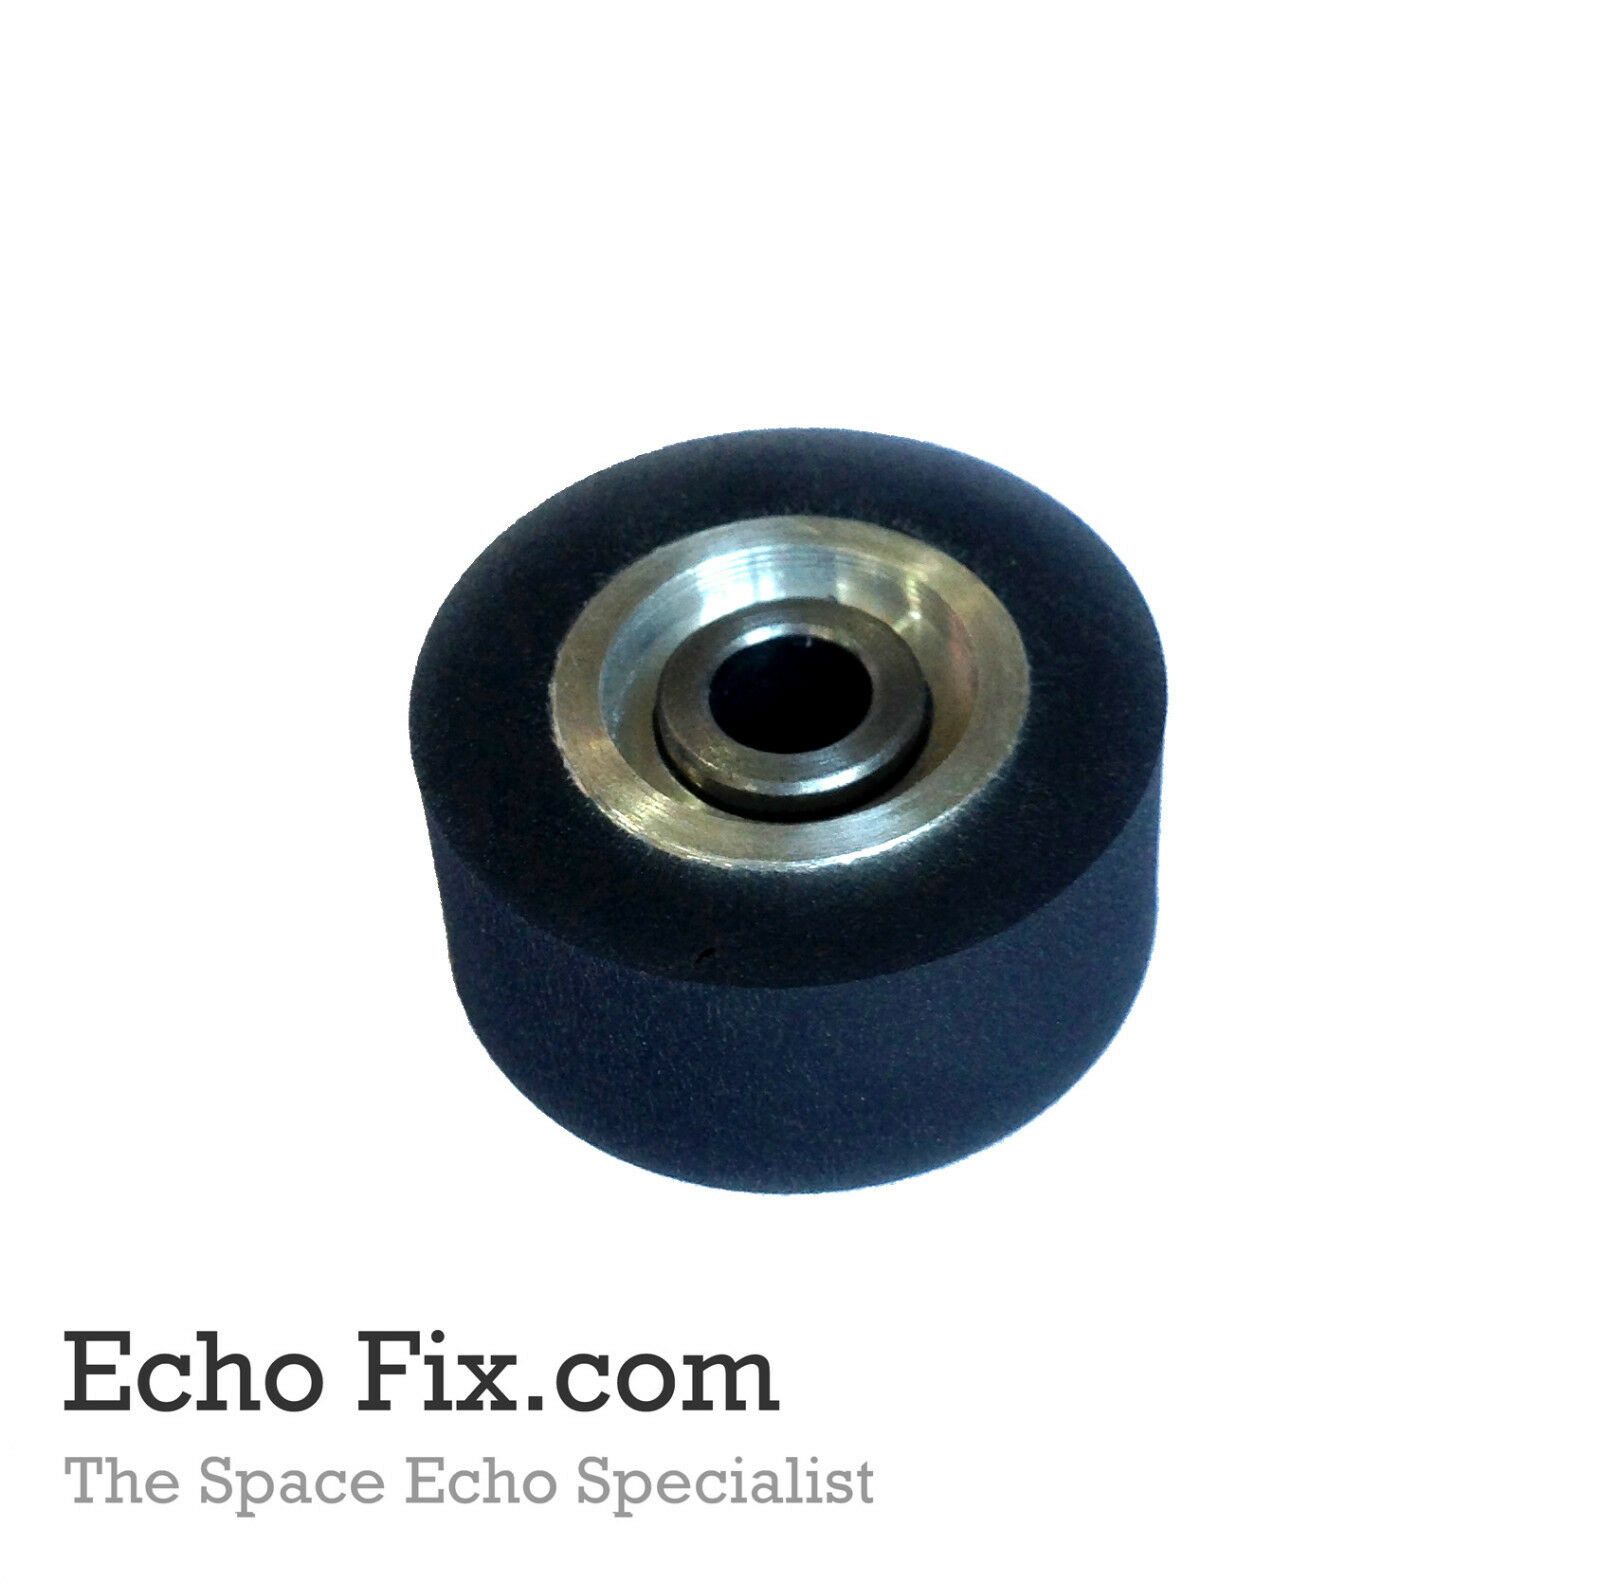 Genuine Roland Space Echo RUBBER ROLLER (Re-rubberot) for RE-201,150,501 etc